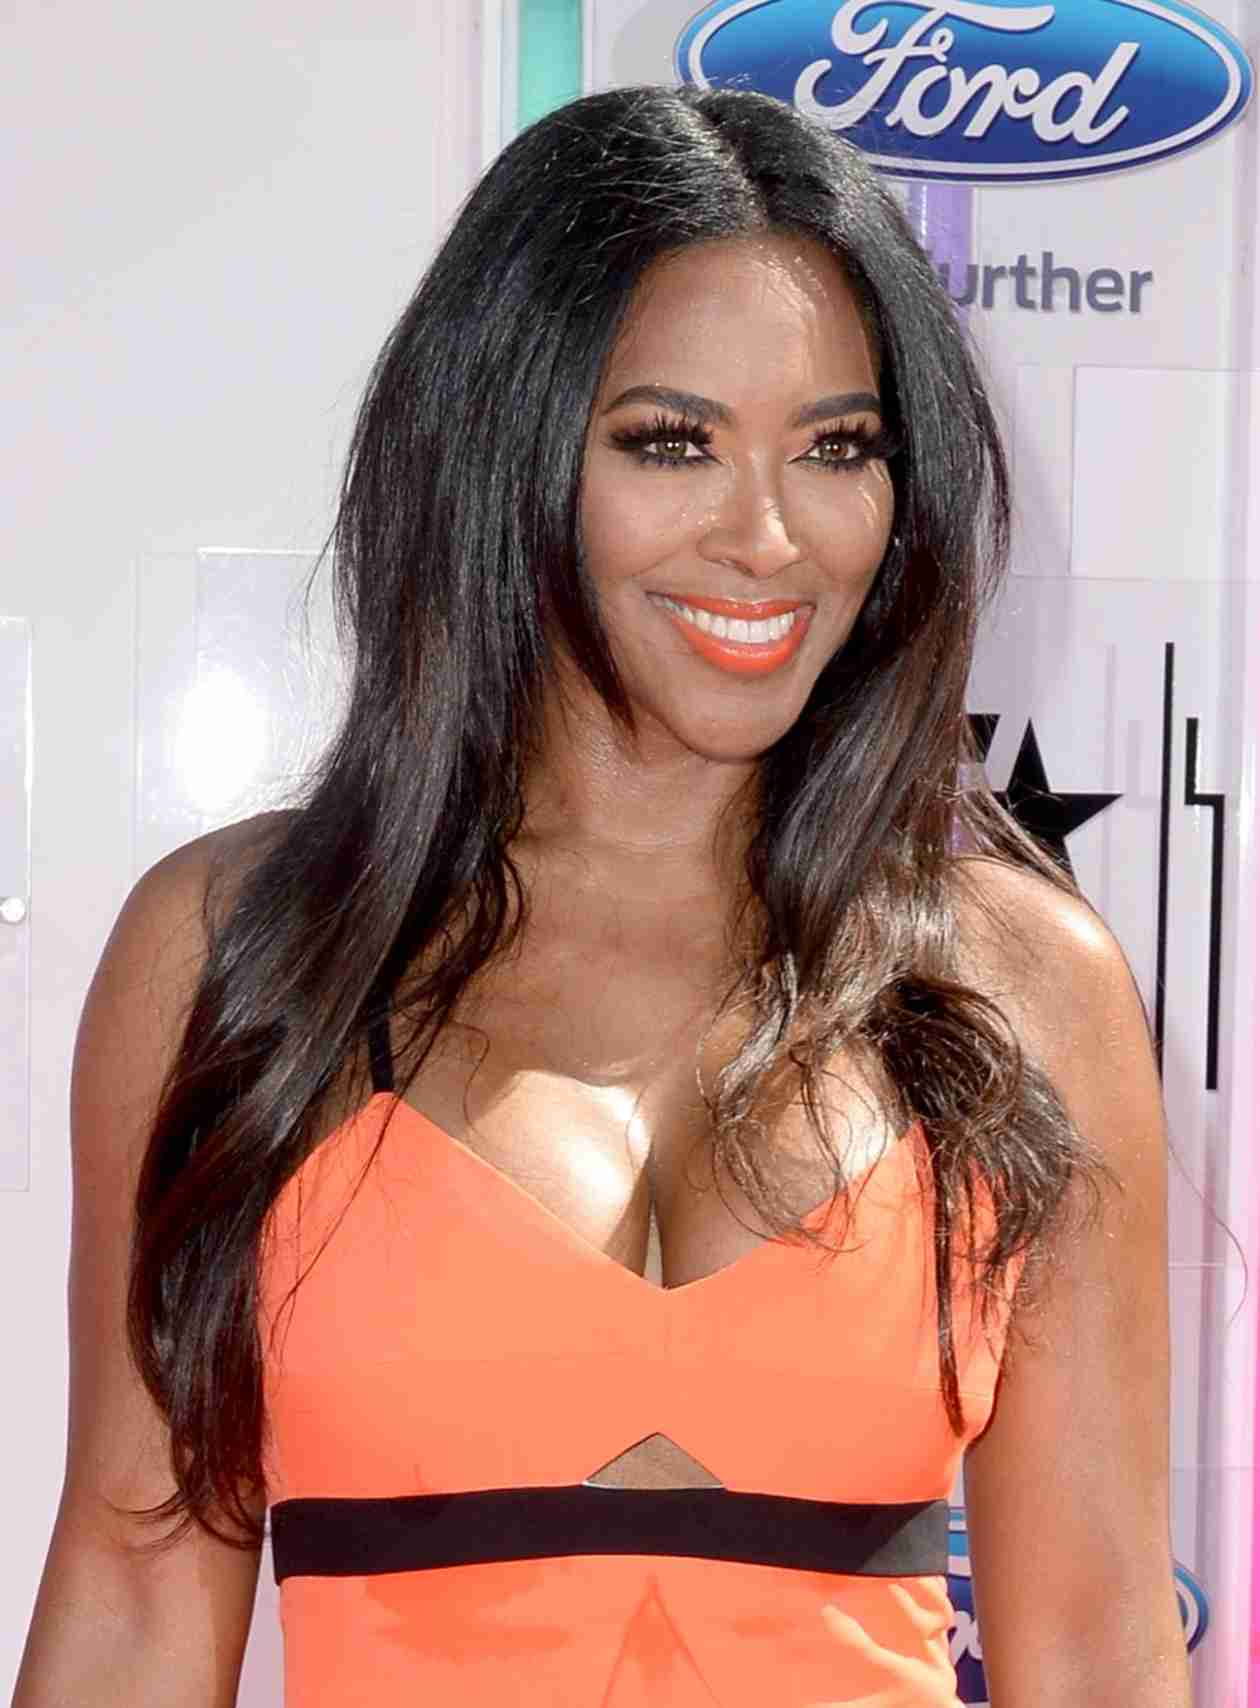 Did Kenya Moore Just Buy a New Bentley? (PHOTO)